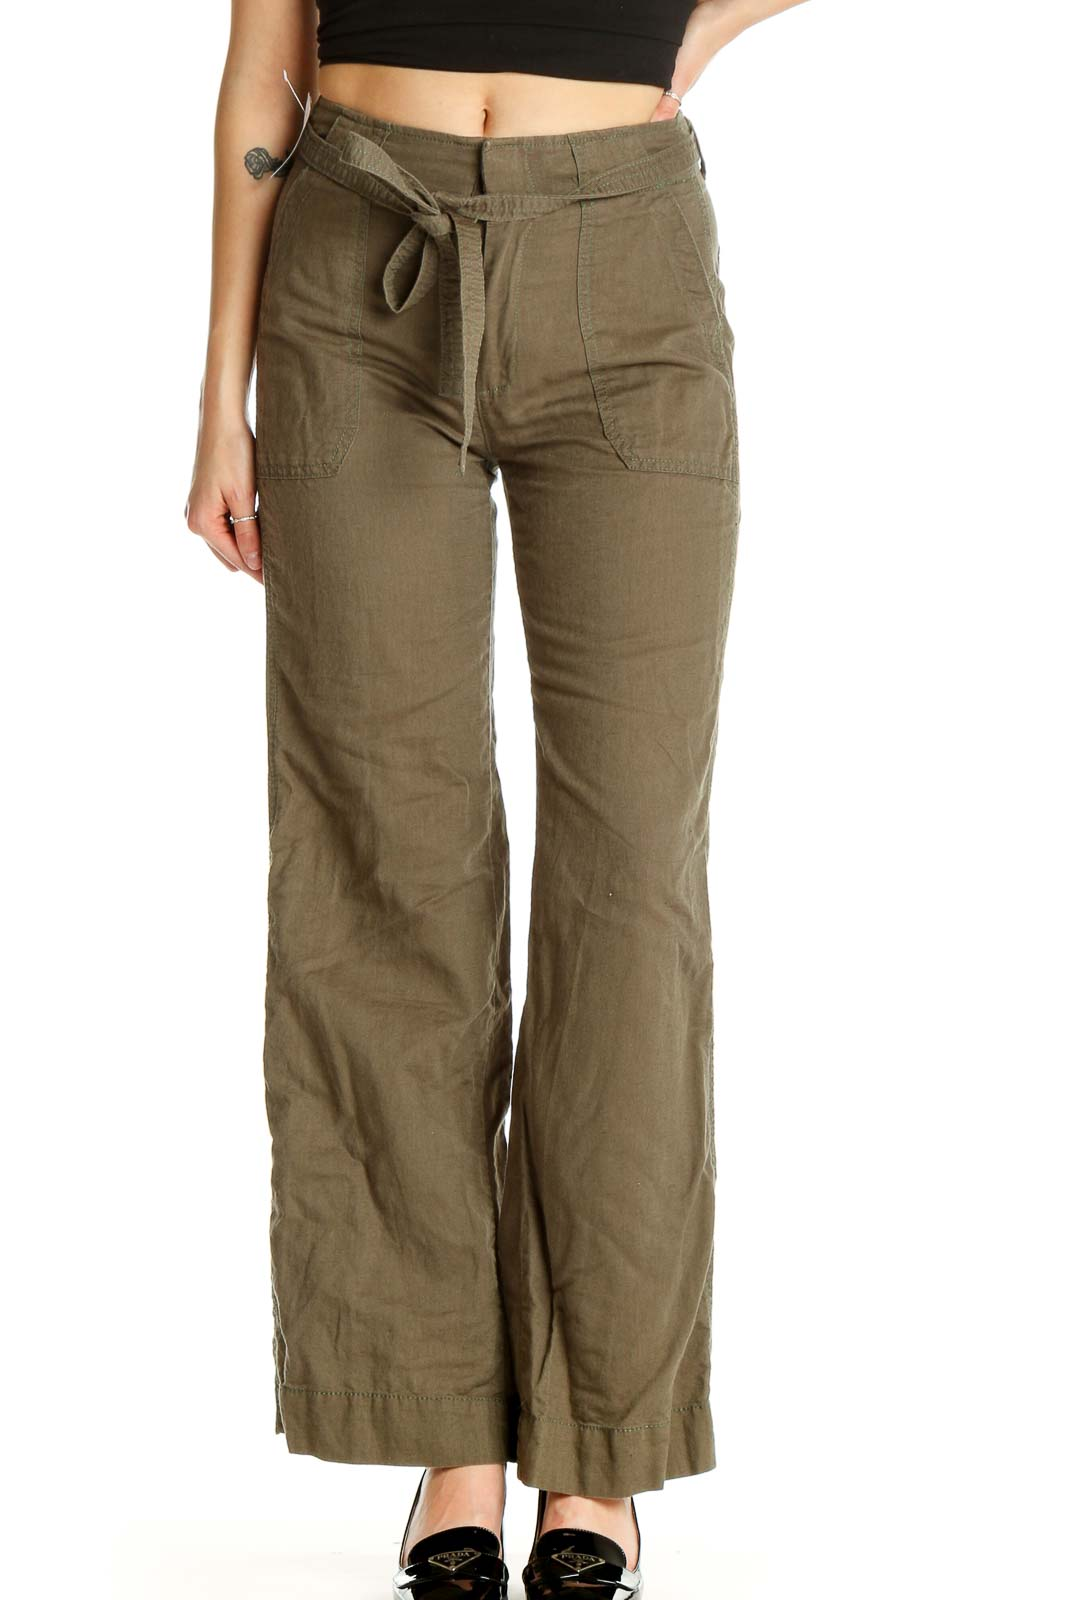 Brown Textured All Day Wear Cargos Pants Front